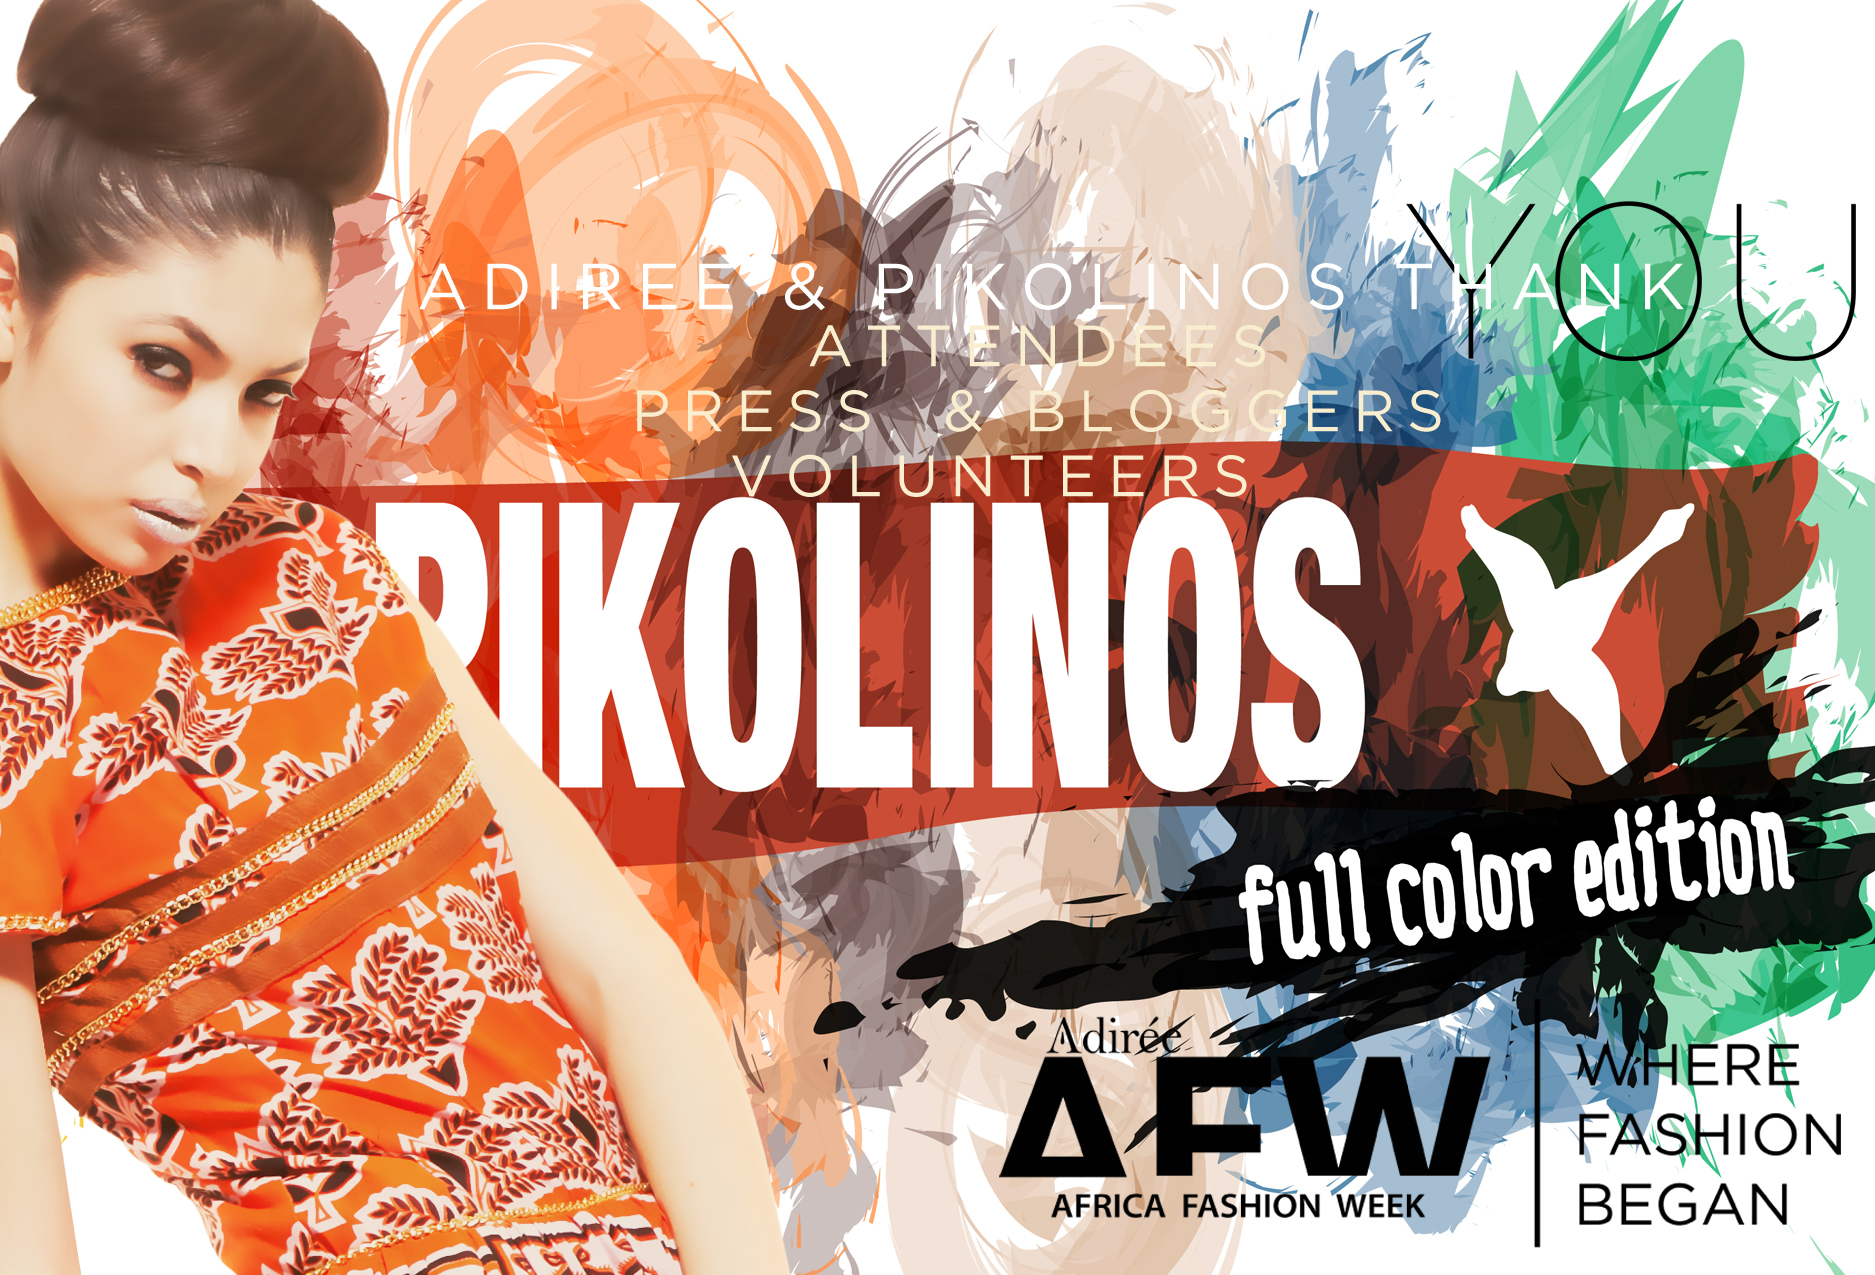 http://gallery.mailchimp.com/164877bc0765537476d90a4e7/images/Adiree_Pikolinos_African_Fashion_Pop_Up_Shop_Thank_You_Card.jpg